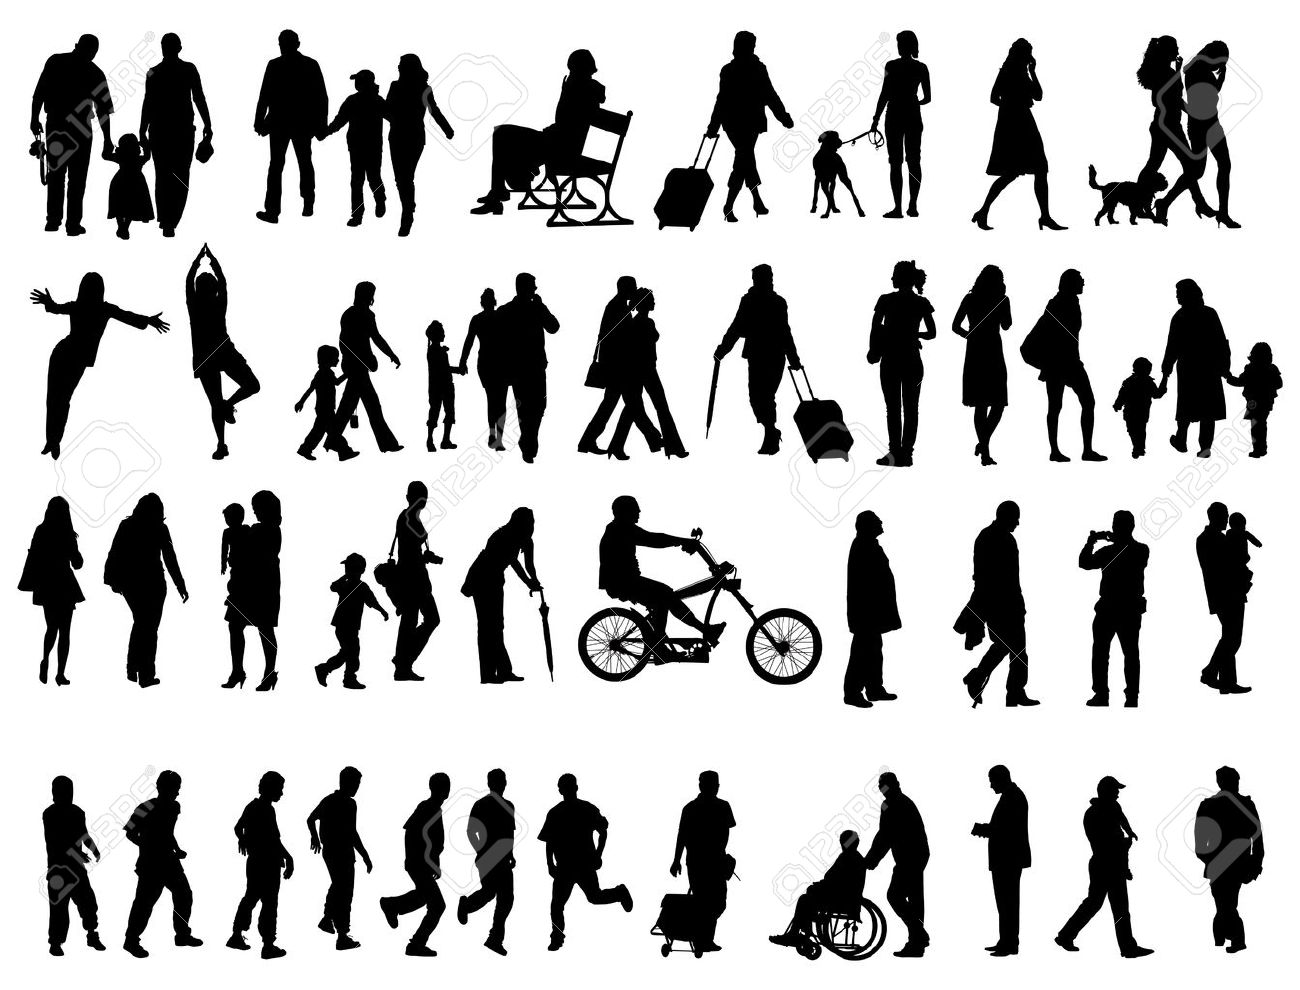 Another over fifty people black silhouettes on white background. Vector illustration. Walking families, friends, dancers,children and guys. Stock Vector - 8584577